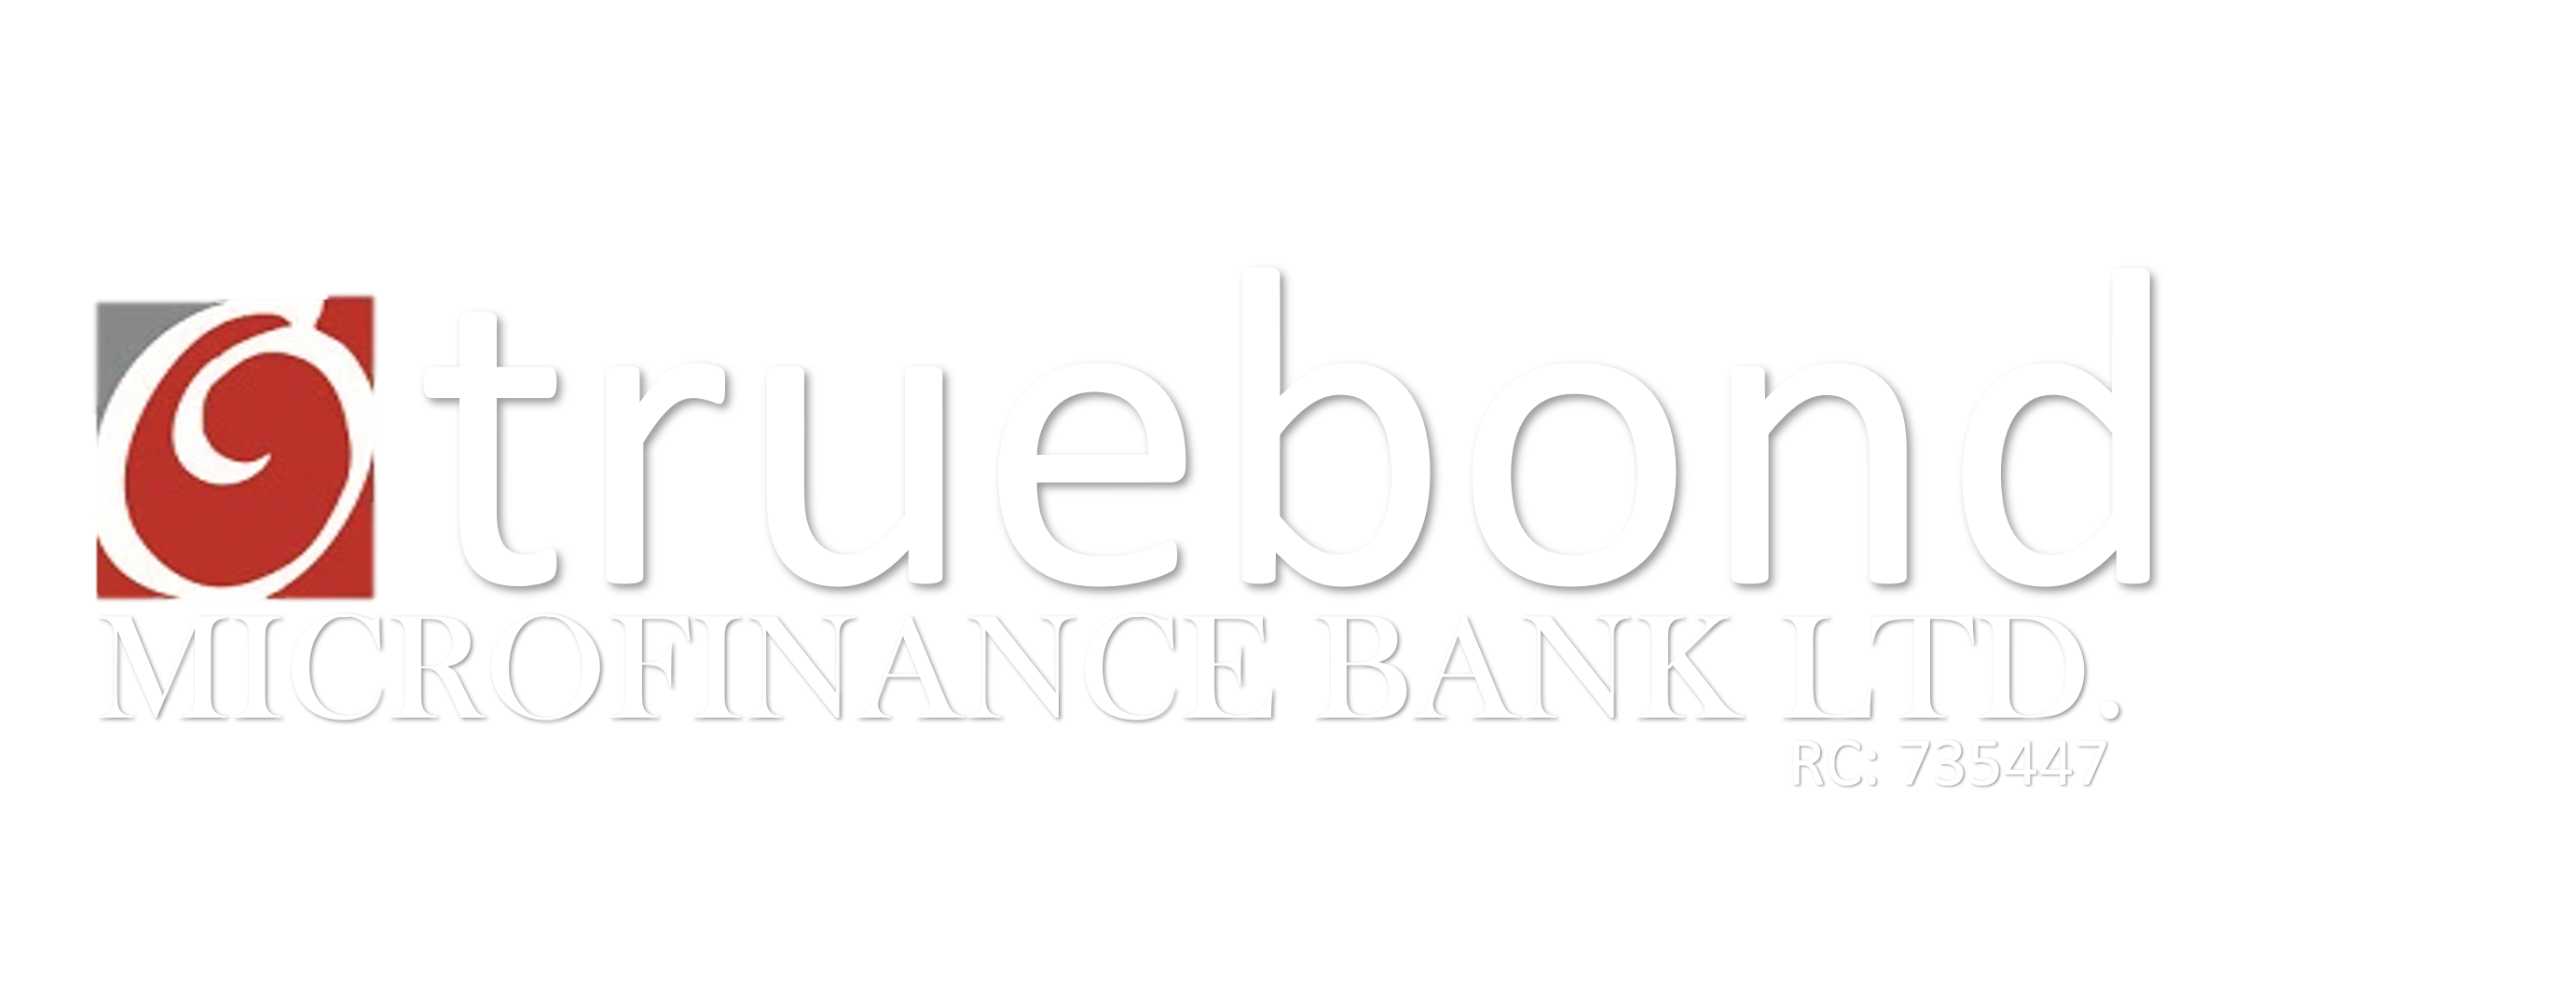 Truebond Microfinance Bank